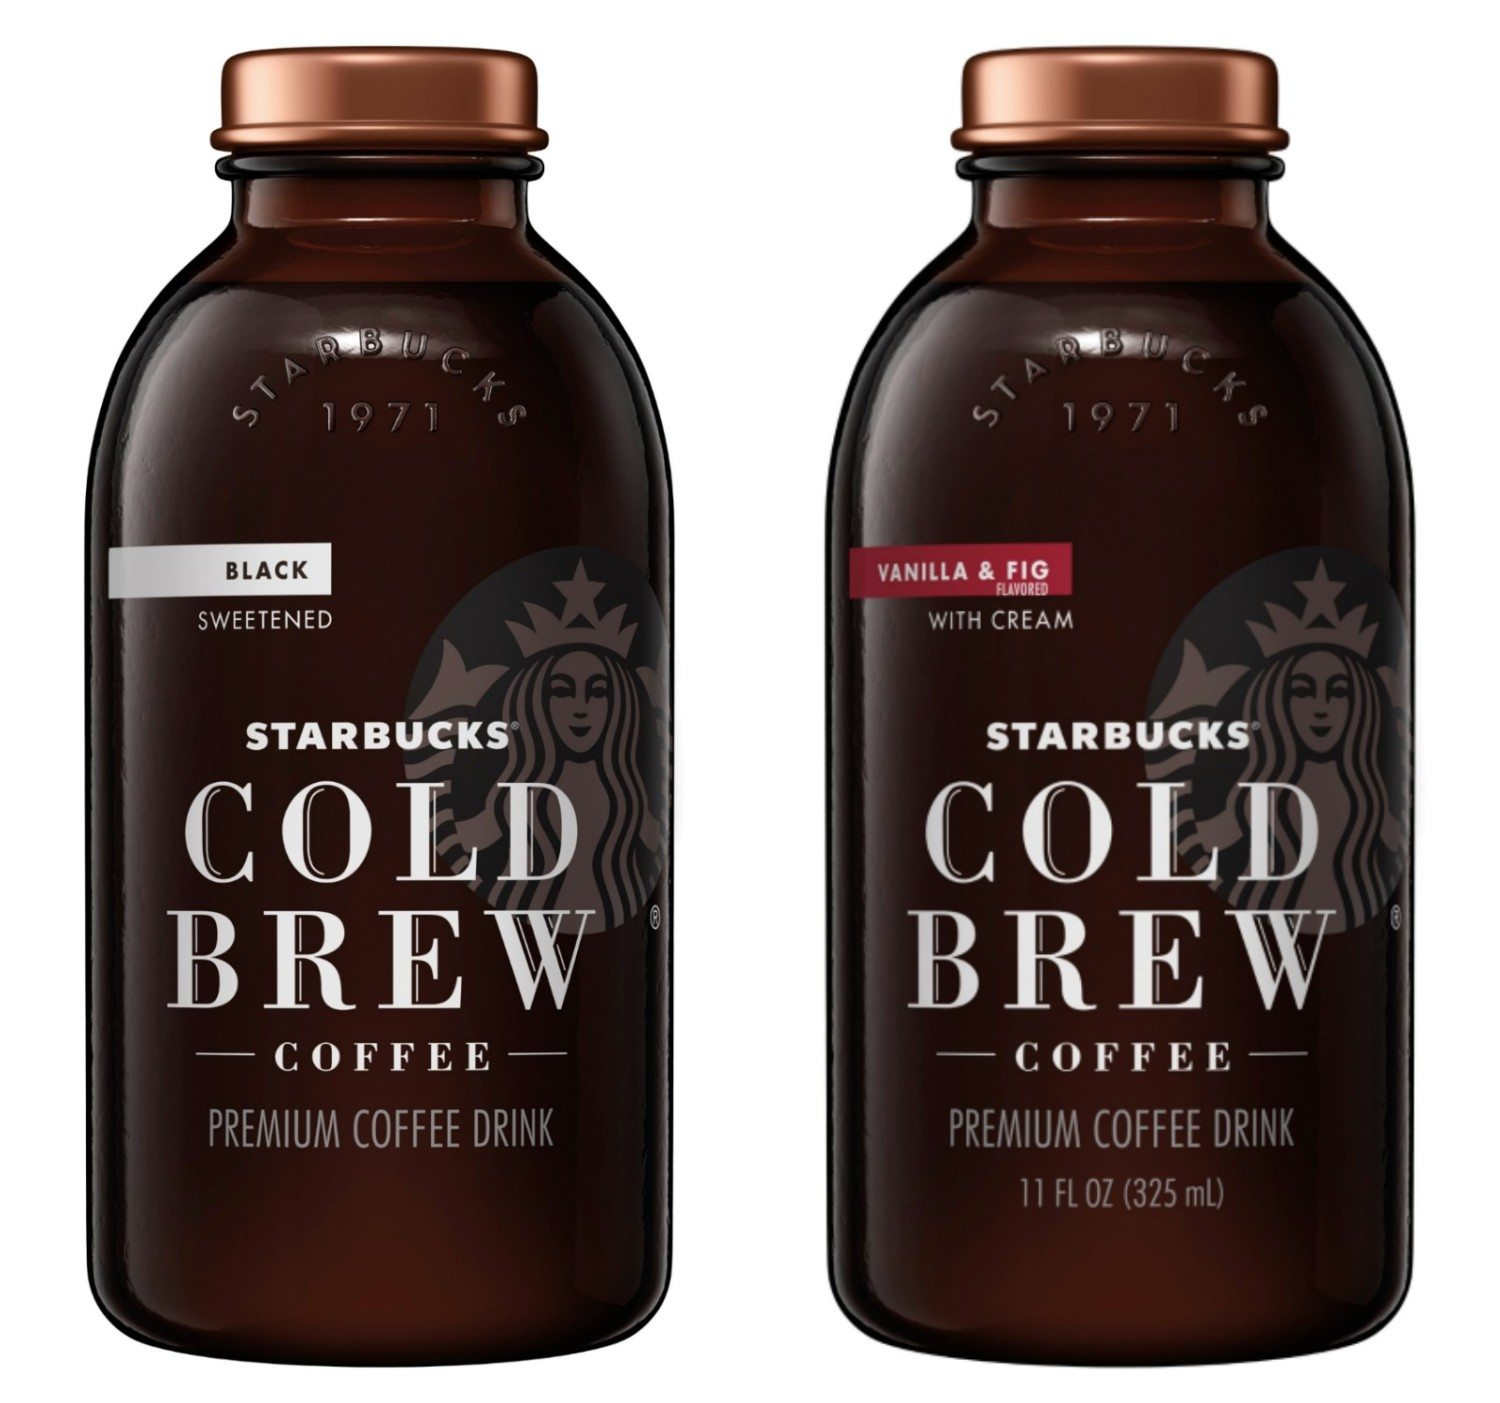 Starbucks Announces Three New Bottled Coffee Drinks